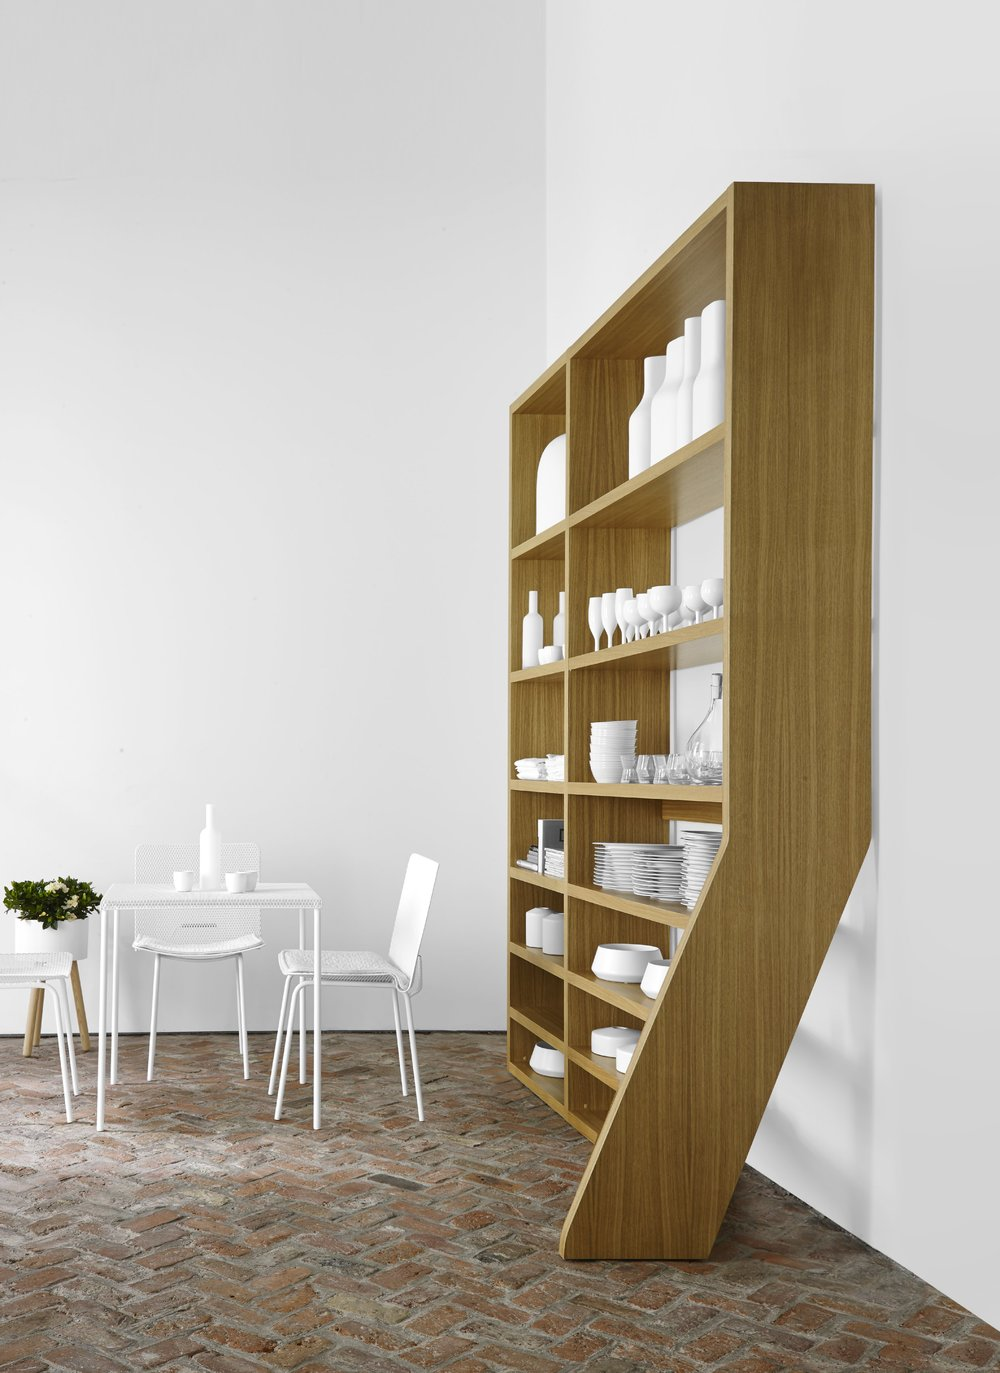 Ligne Roset's Shelf Unit